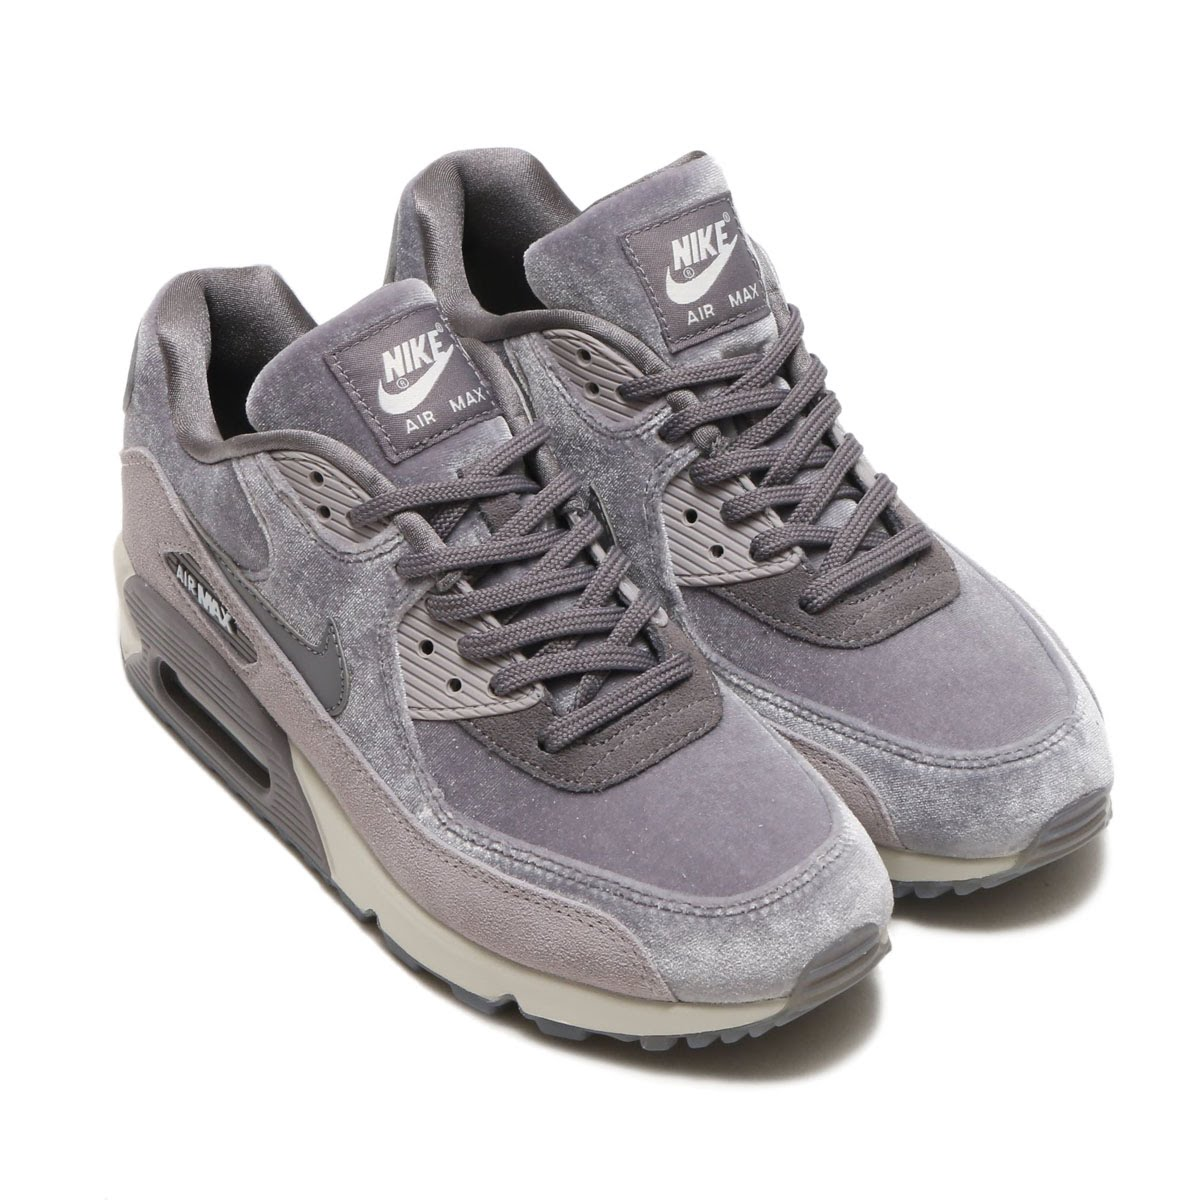 3adaaa5945a Air Max 90 comes up three years after bithe bulldog Air was born. More than  the limit called shoes for the basketball